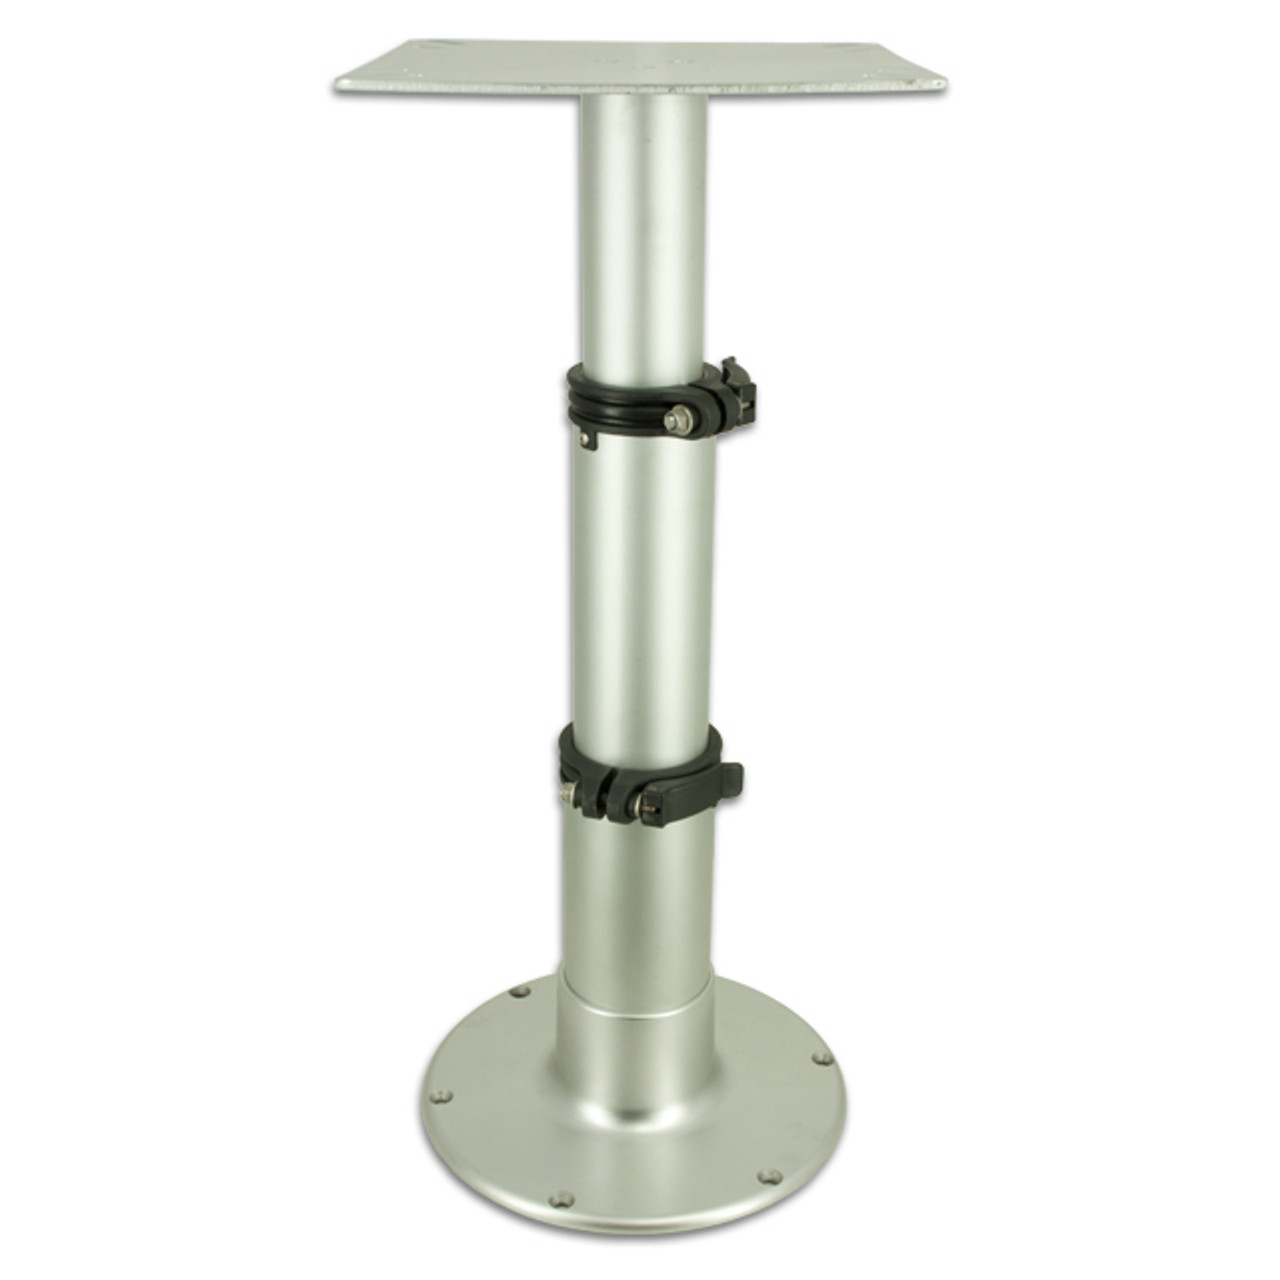 Springfield Marine Adjustable Table Pedestal 3 Stage Table Pedestal 1660231 14 28 Inches Cascade Depot